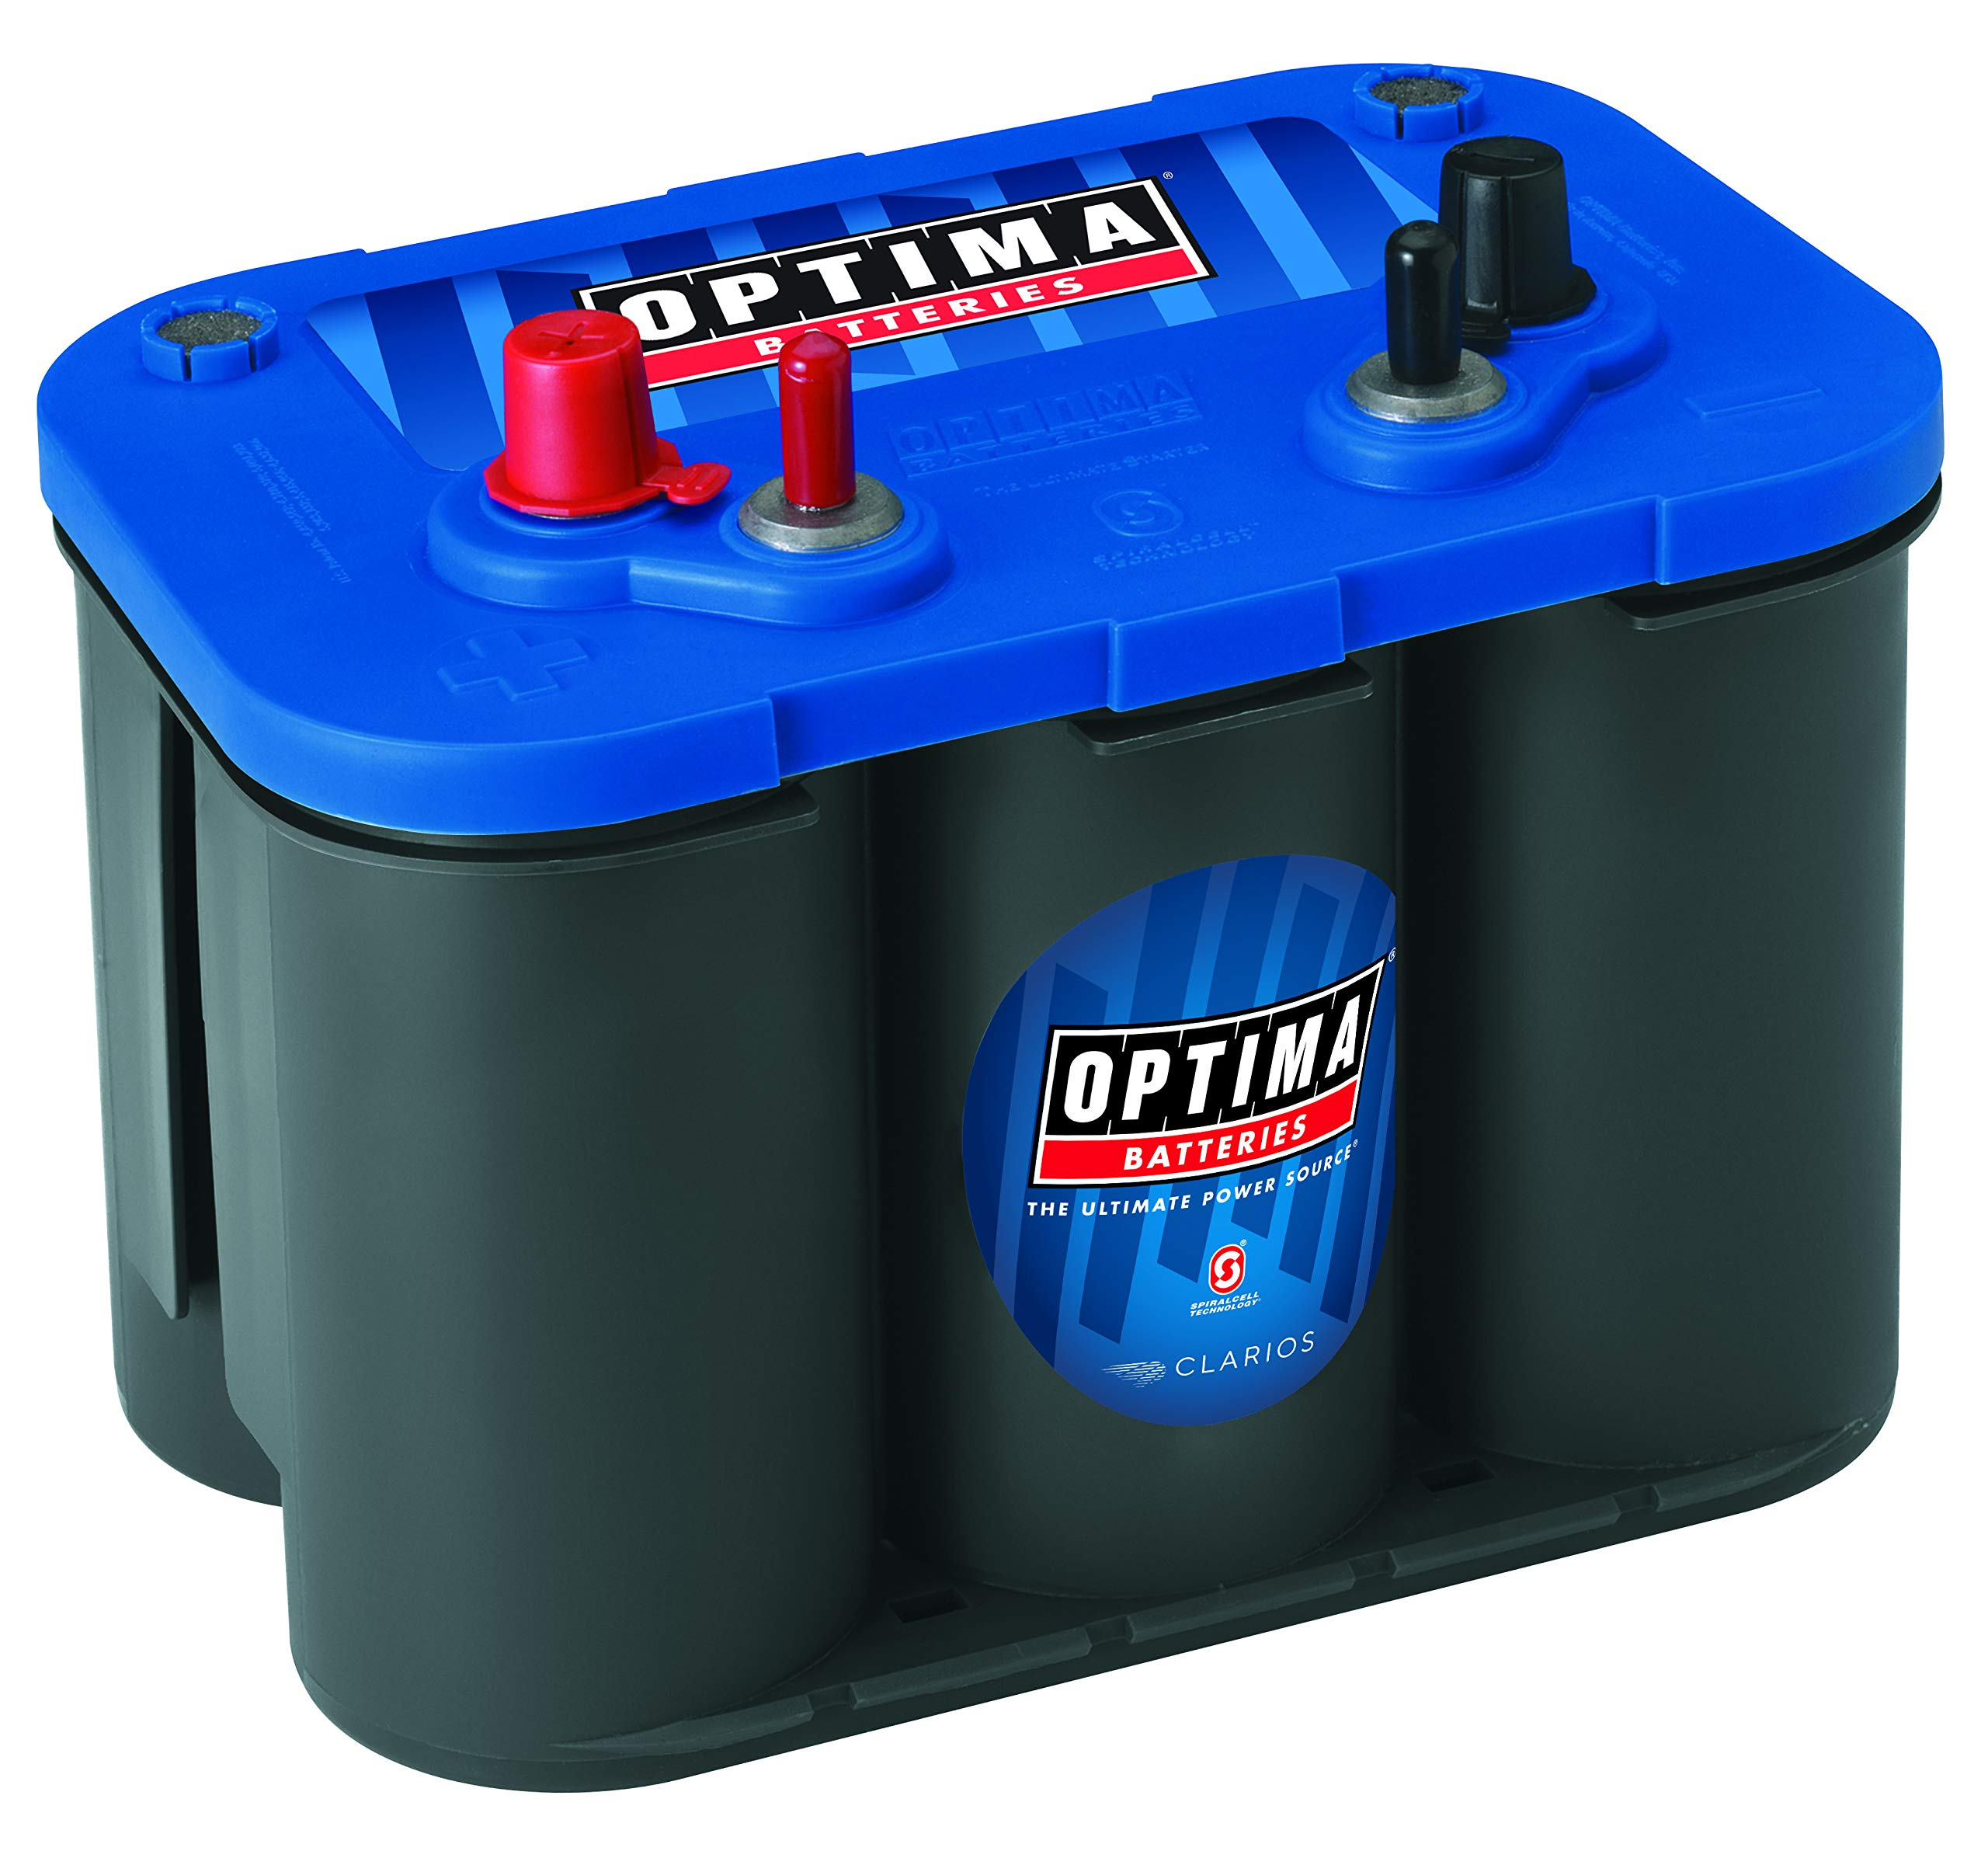 Optima Batteries 8006 006 BlueTop Starting